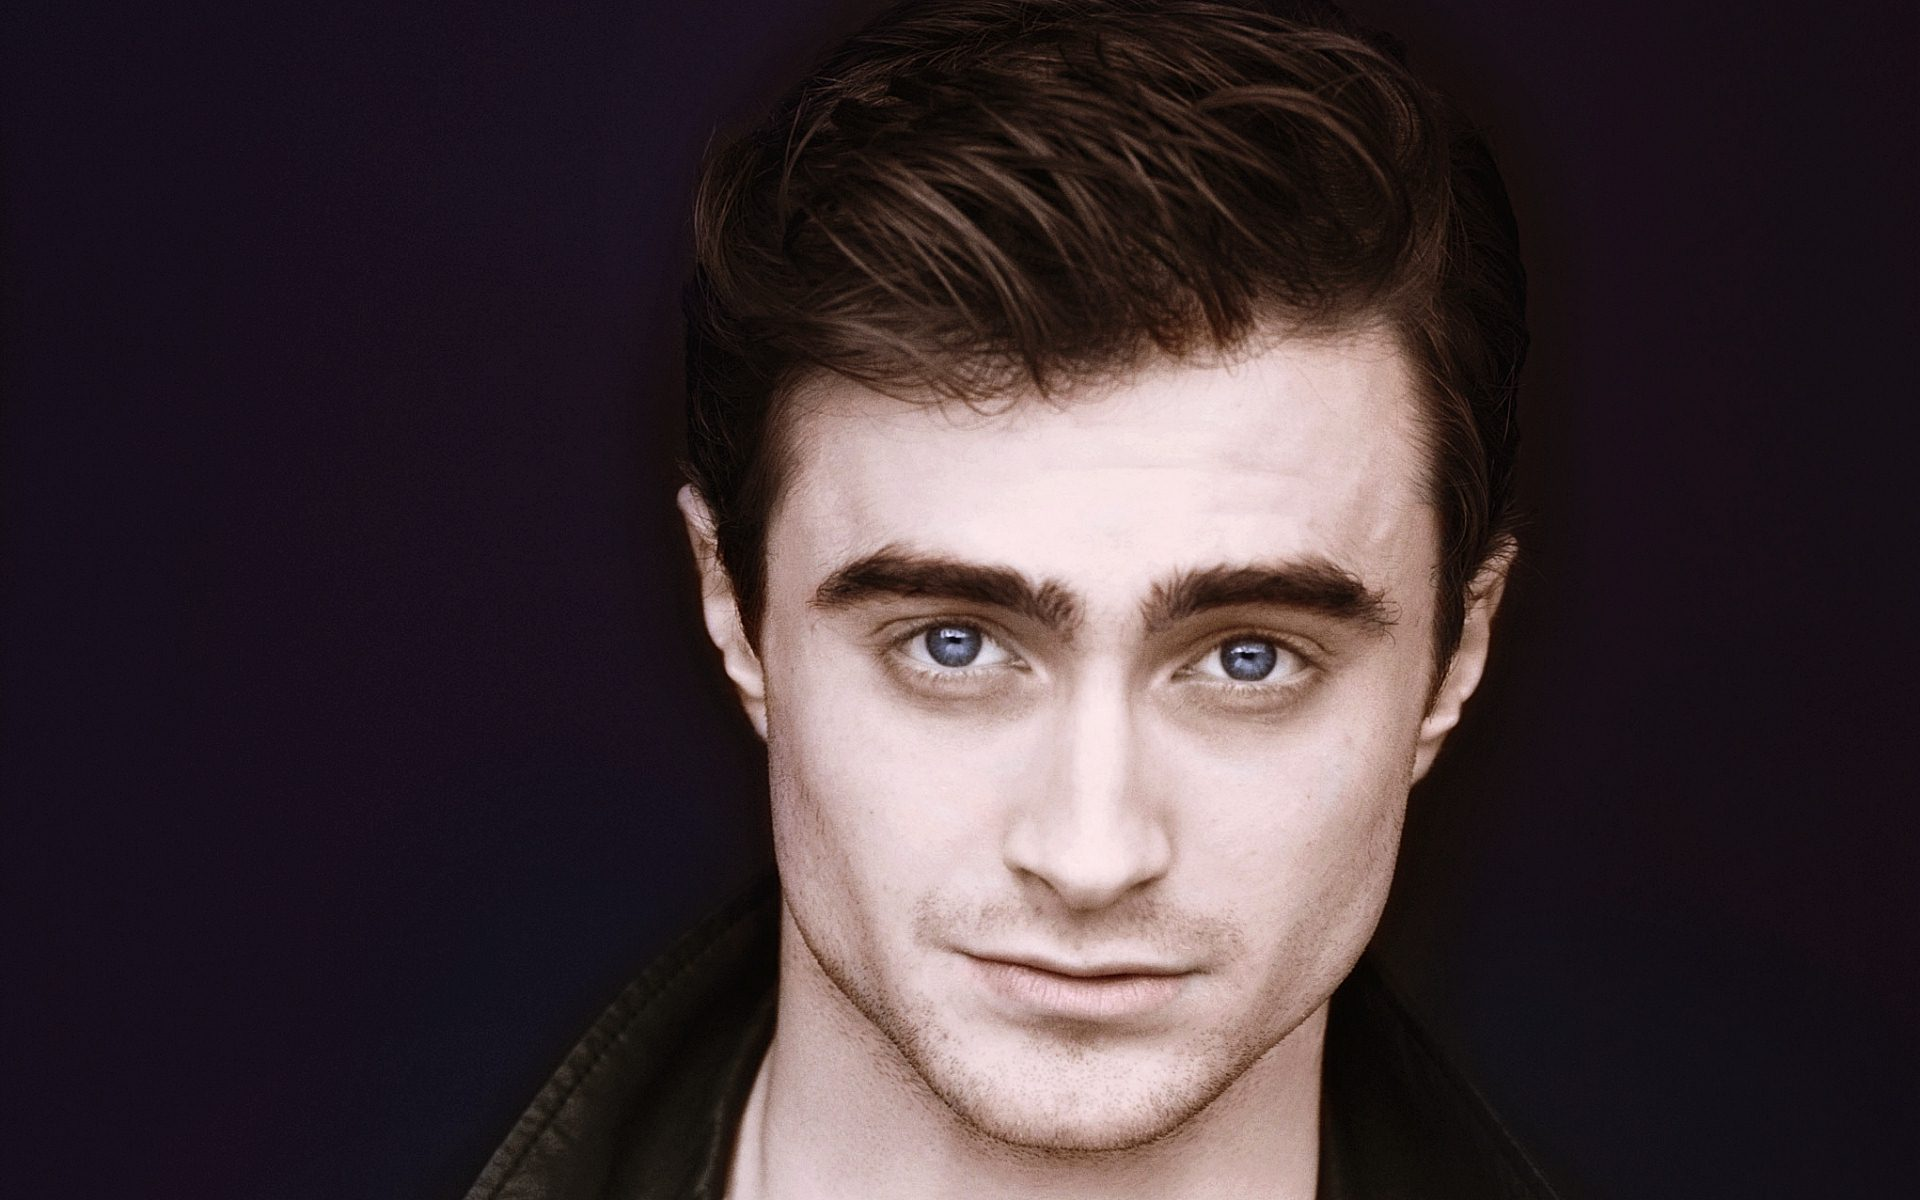 Watch Daniel Radcliffe (born 1989) video